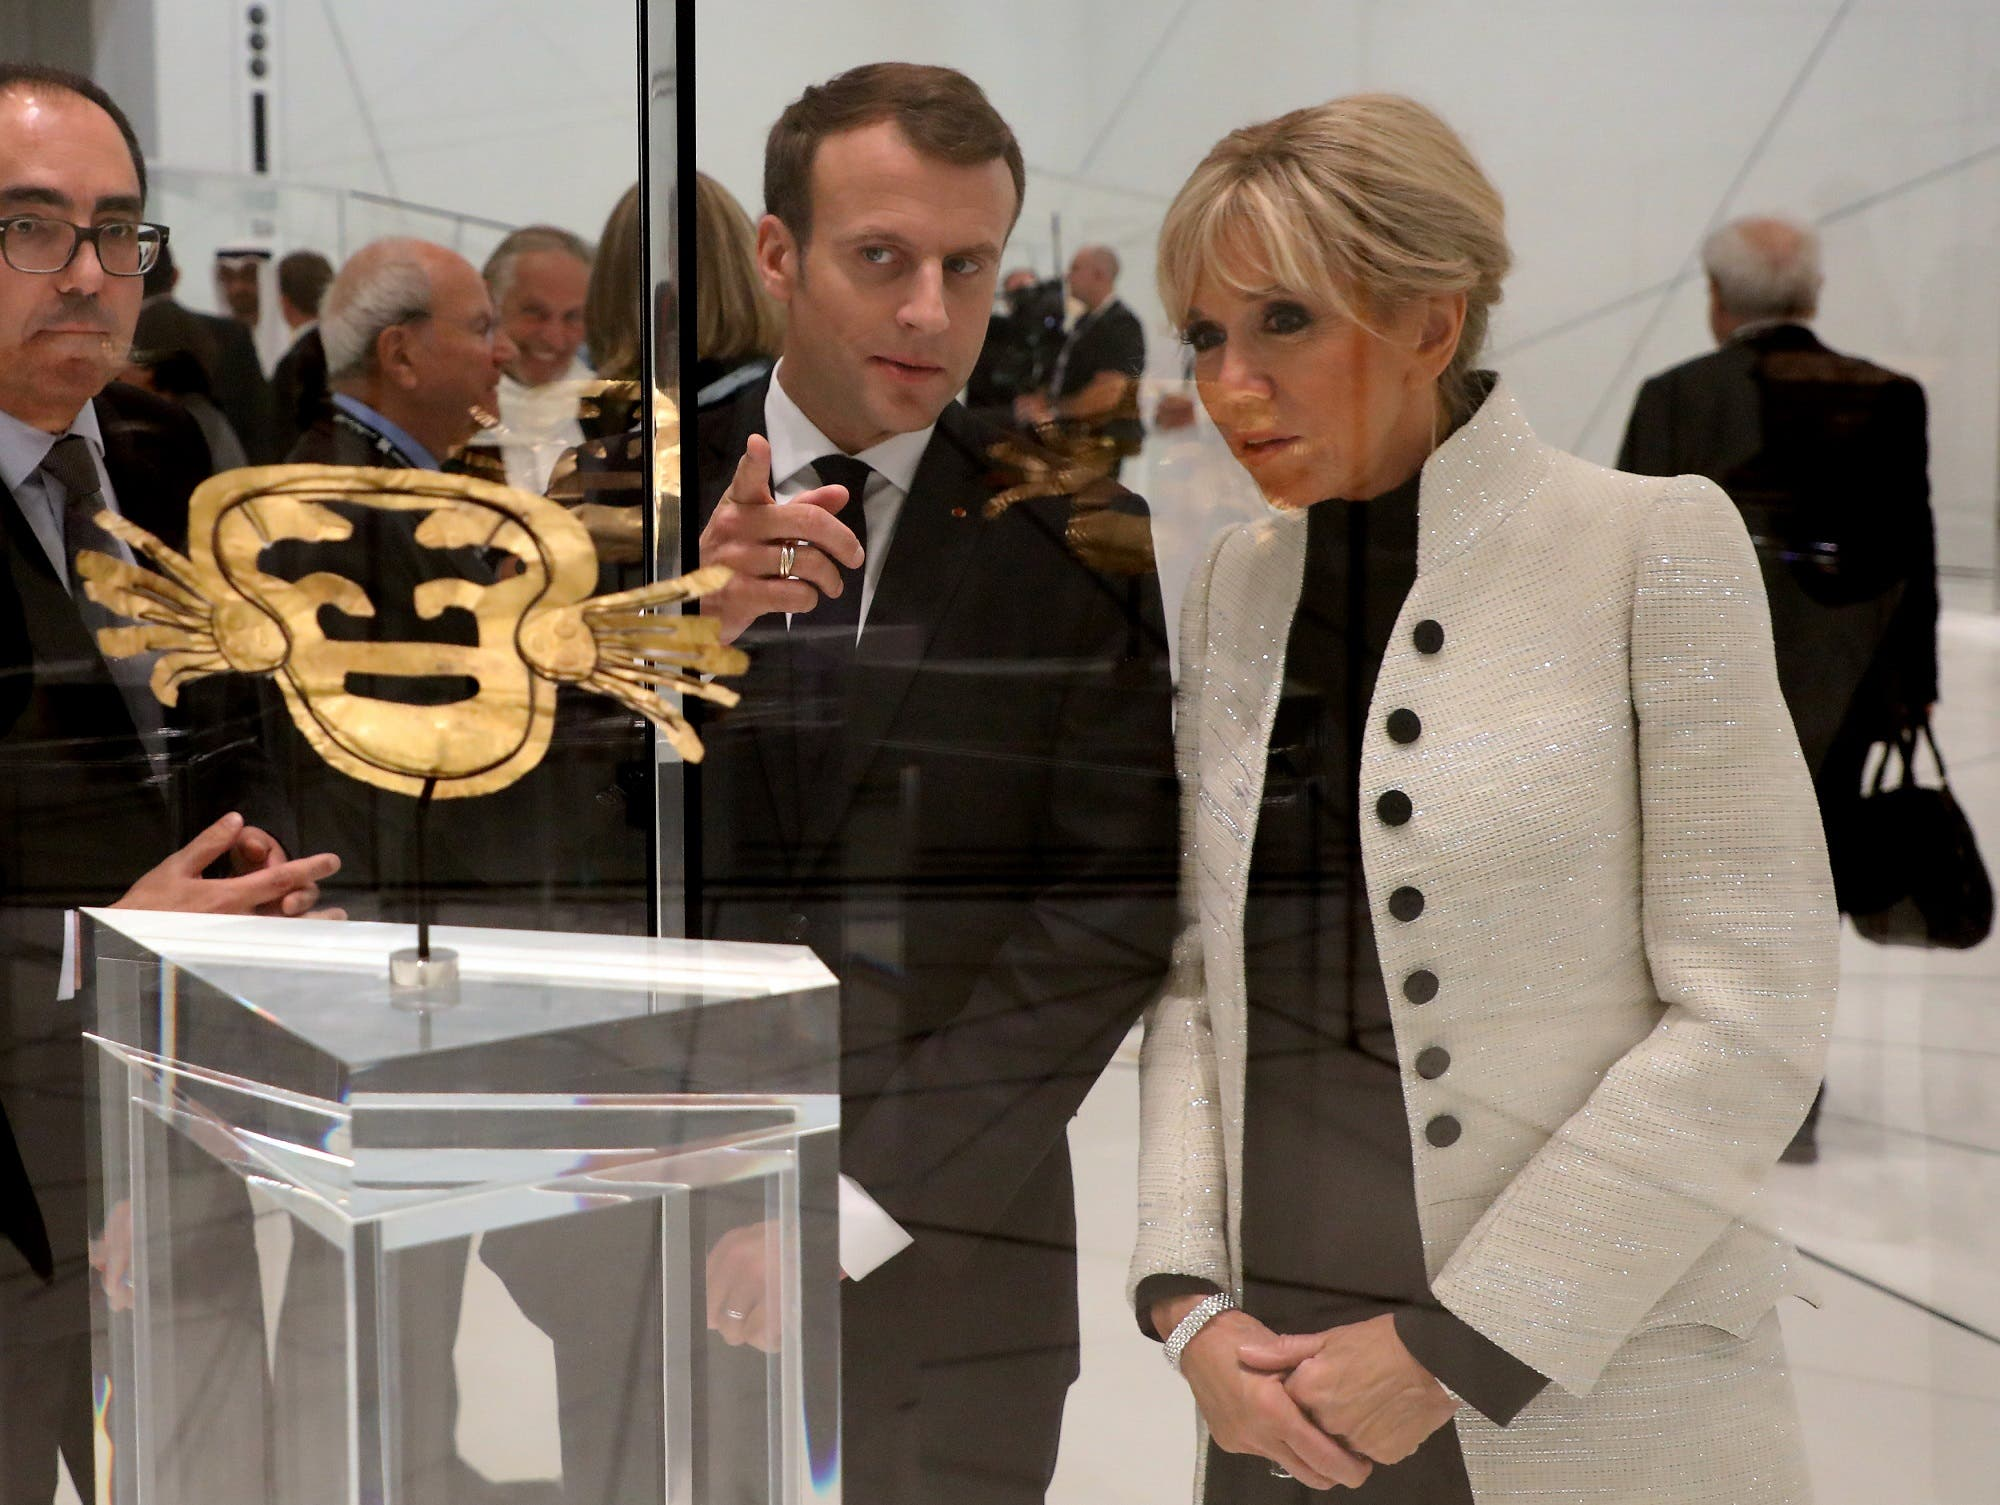 Macron and his wife Brigitte Macron look at a piece of art as they visit the Louvre Abu Dhabi Museum in Abu Dhabi, UAE, November 8, 2017. (Reuters)